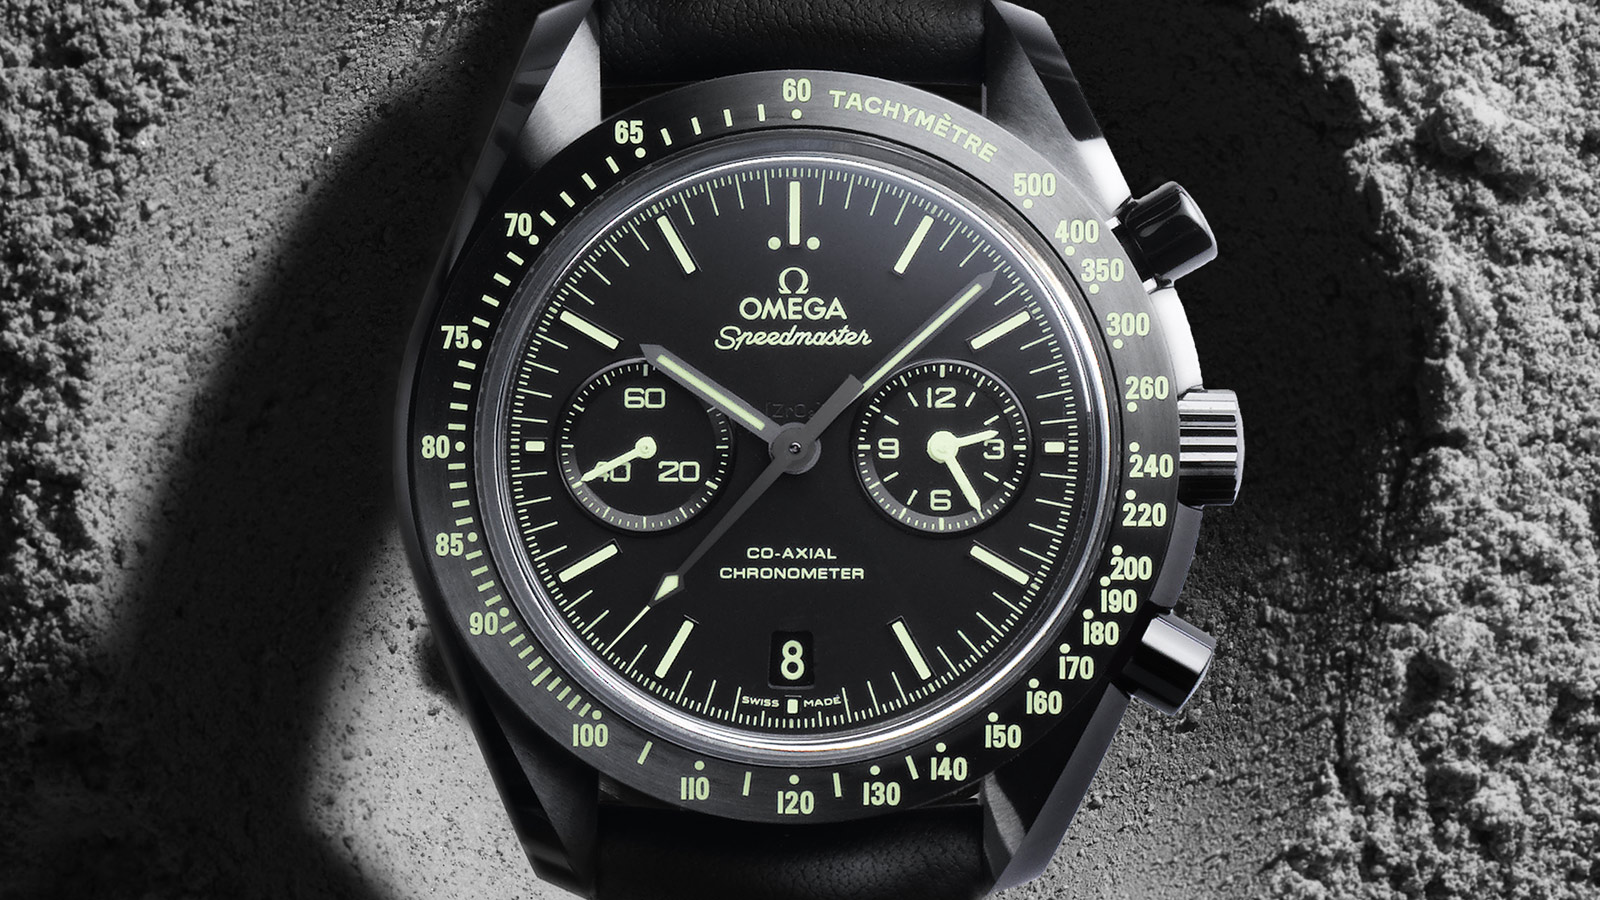 Speedmaster ムーンウォッチ Moonwatch Omega Co‑Axial Chronograph 44.25 mm - 311.92.44.51.01.004 - ビュー 1